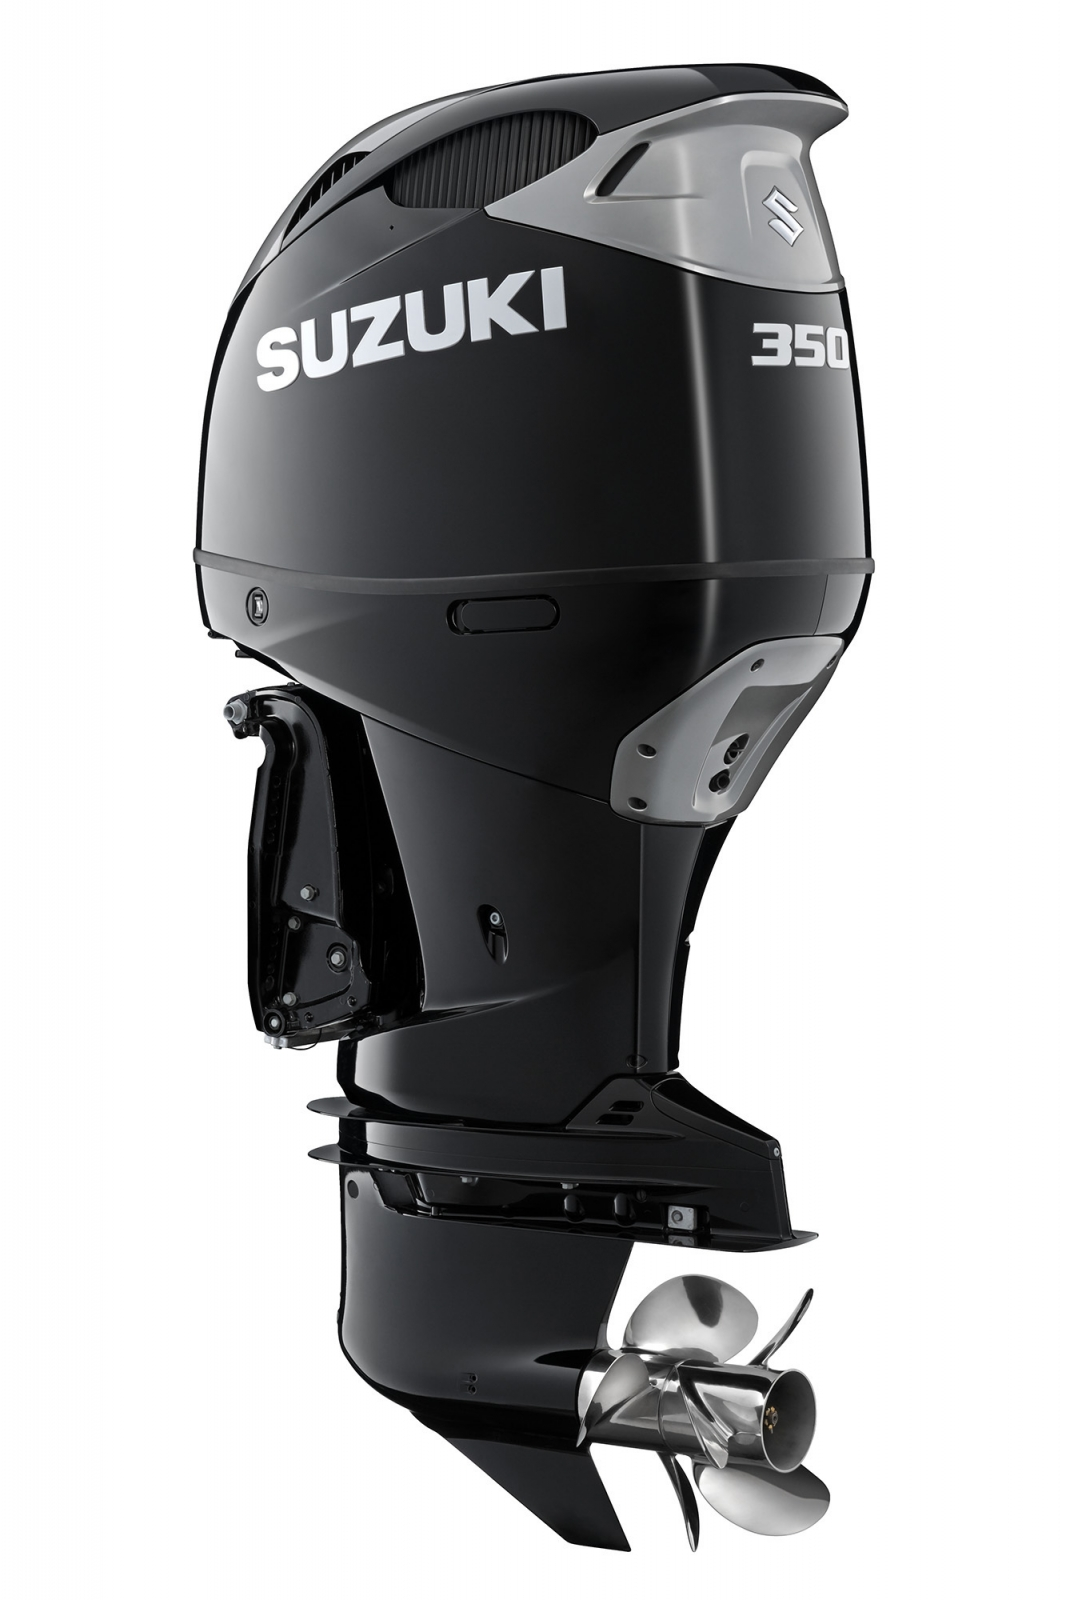 suzuki introduces df350a 350 hp v6 4 stroke outboard suzuki marine europe. Black Bedroom Furniture Sets. Home Design Ideas